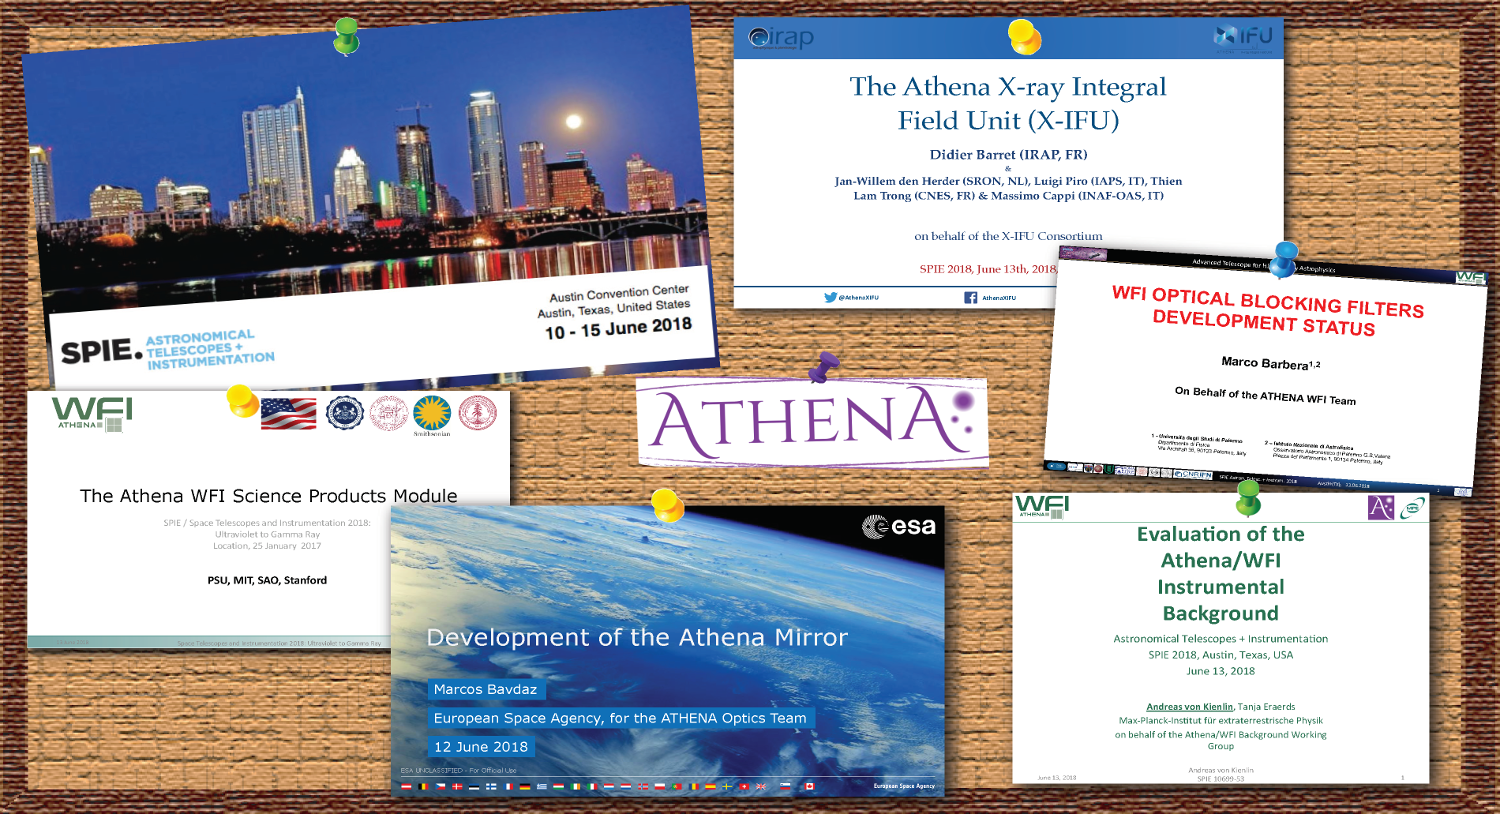 Several sessions on Athena at the 2018 SPIE Astronomical Telescopes and Instrumentation conference